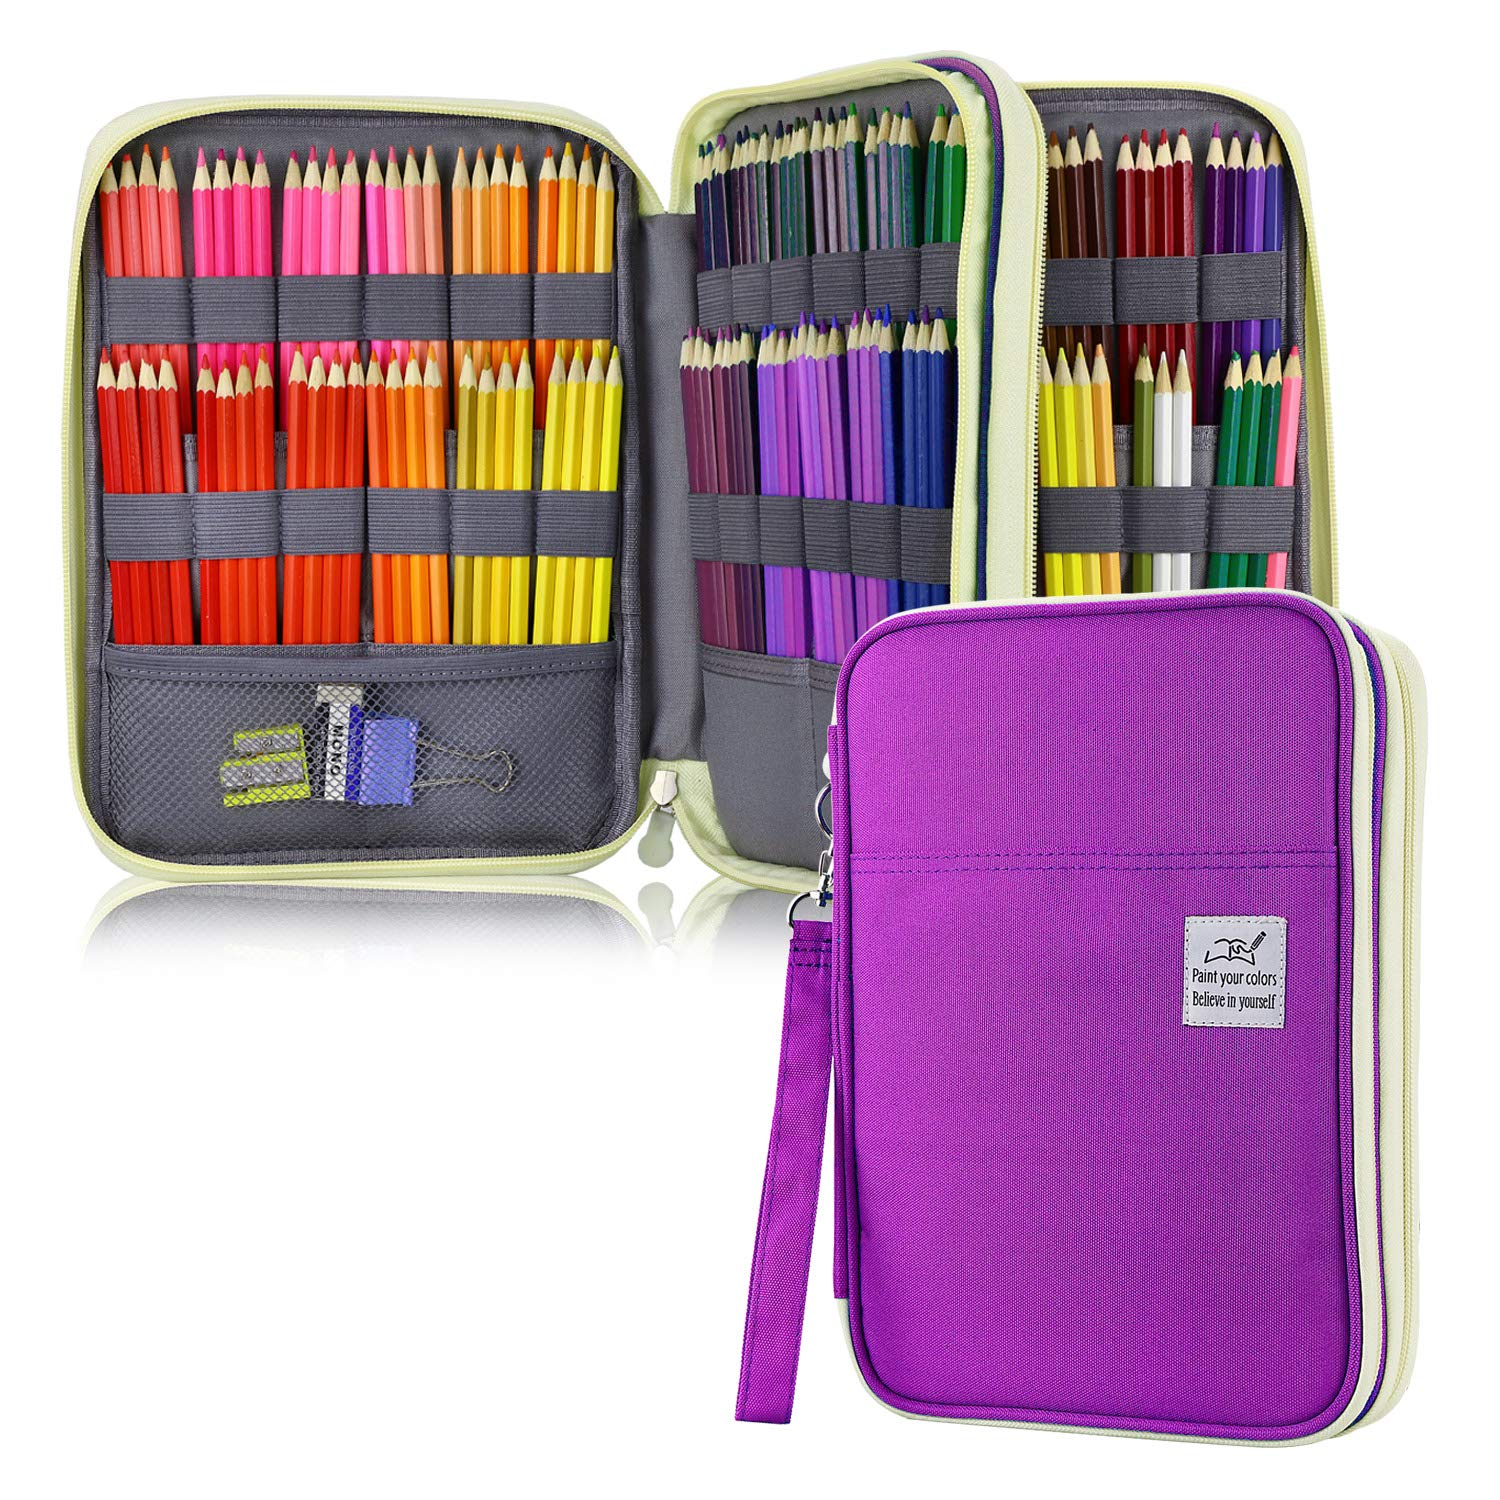 YOUSHARES 192 Slots Colored Pencil Case, Large Capacity Pencil Holder Pen Organizer Bag with Zipper for Prismacolor Watercolor Coloring Pencils, Gel Pens & Markers for Student & Artist (Purple) by YOUSHARES